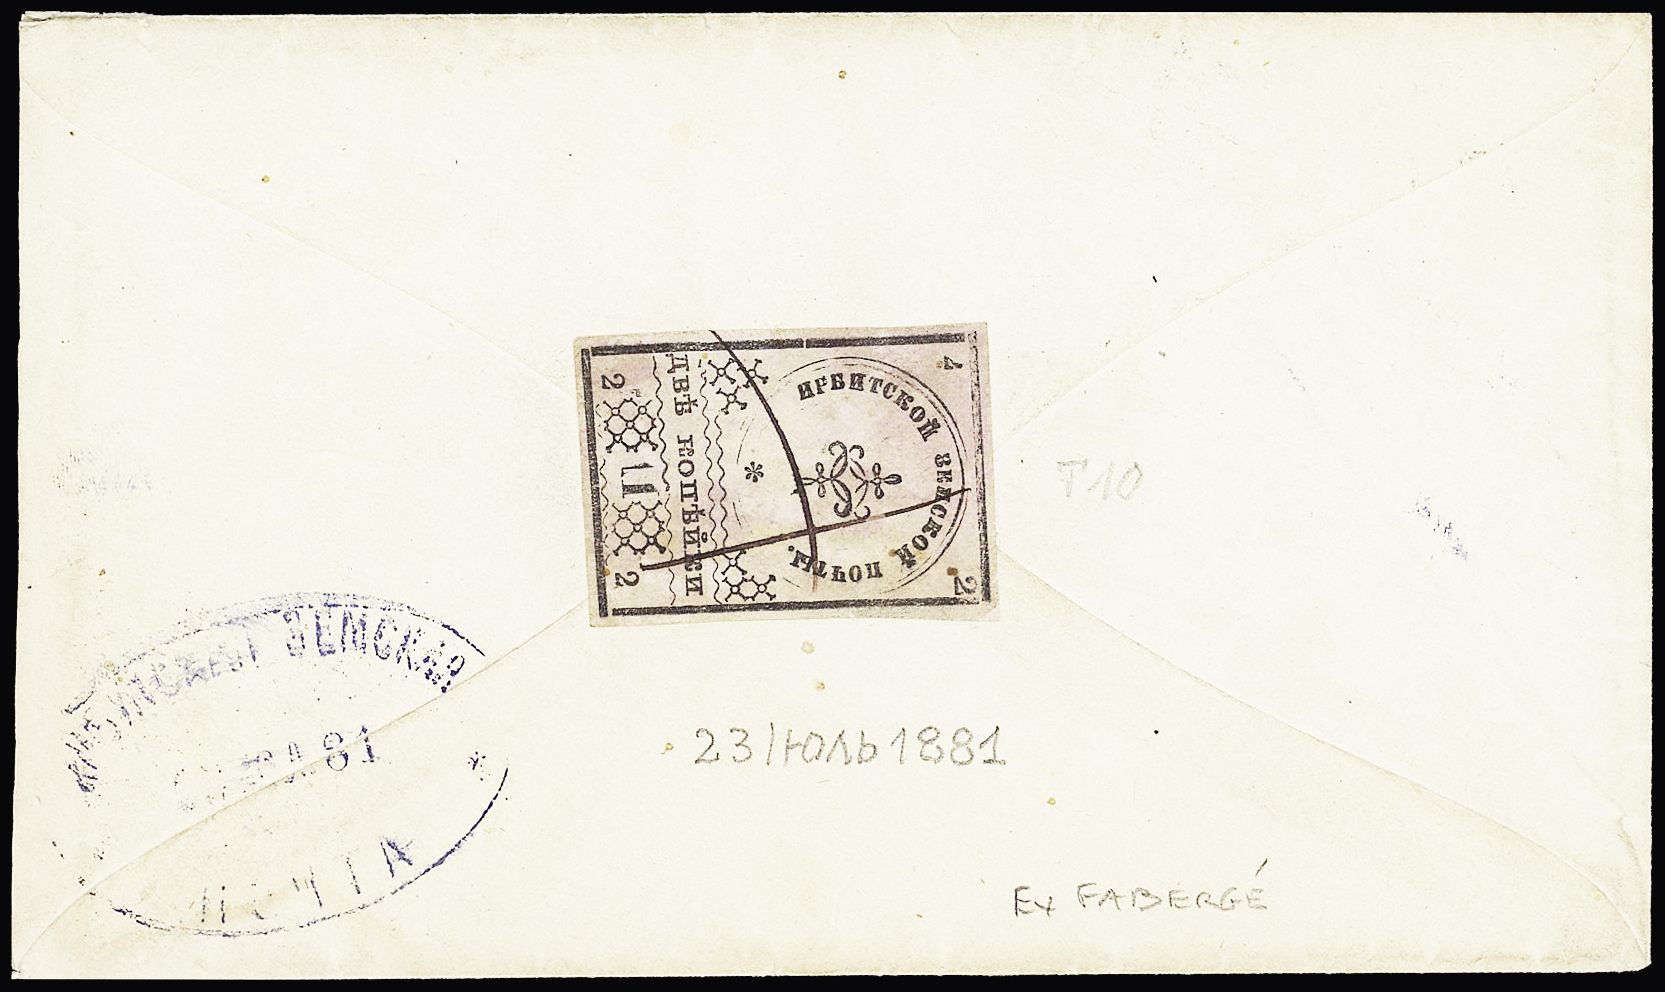 Lot 456 - Eastern Europe » RUSSIA - ZEMSTVOS » Irbit (Perm Government)  -  Le Timbre Classique SA SALE ON OFFERS N ° 37 PARIS